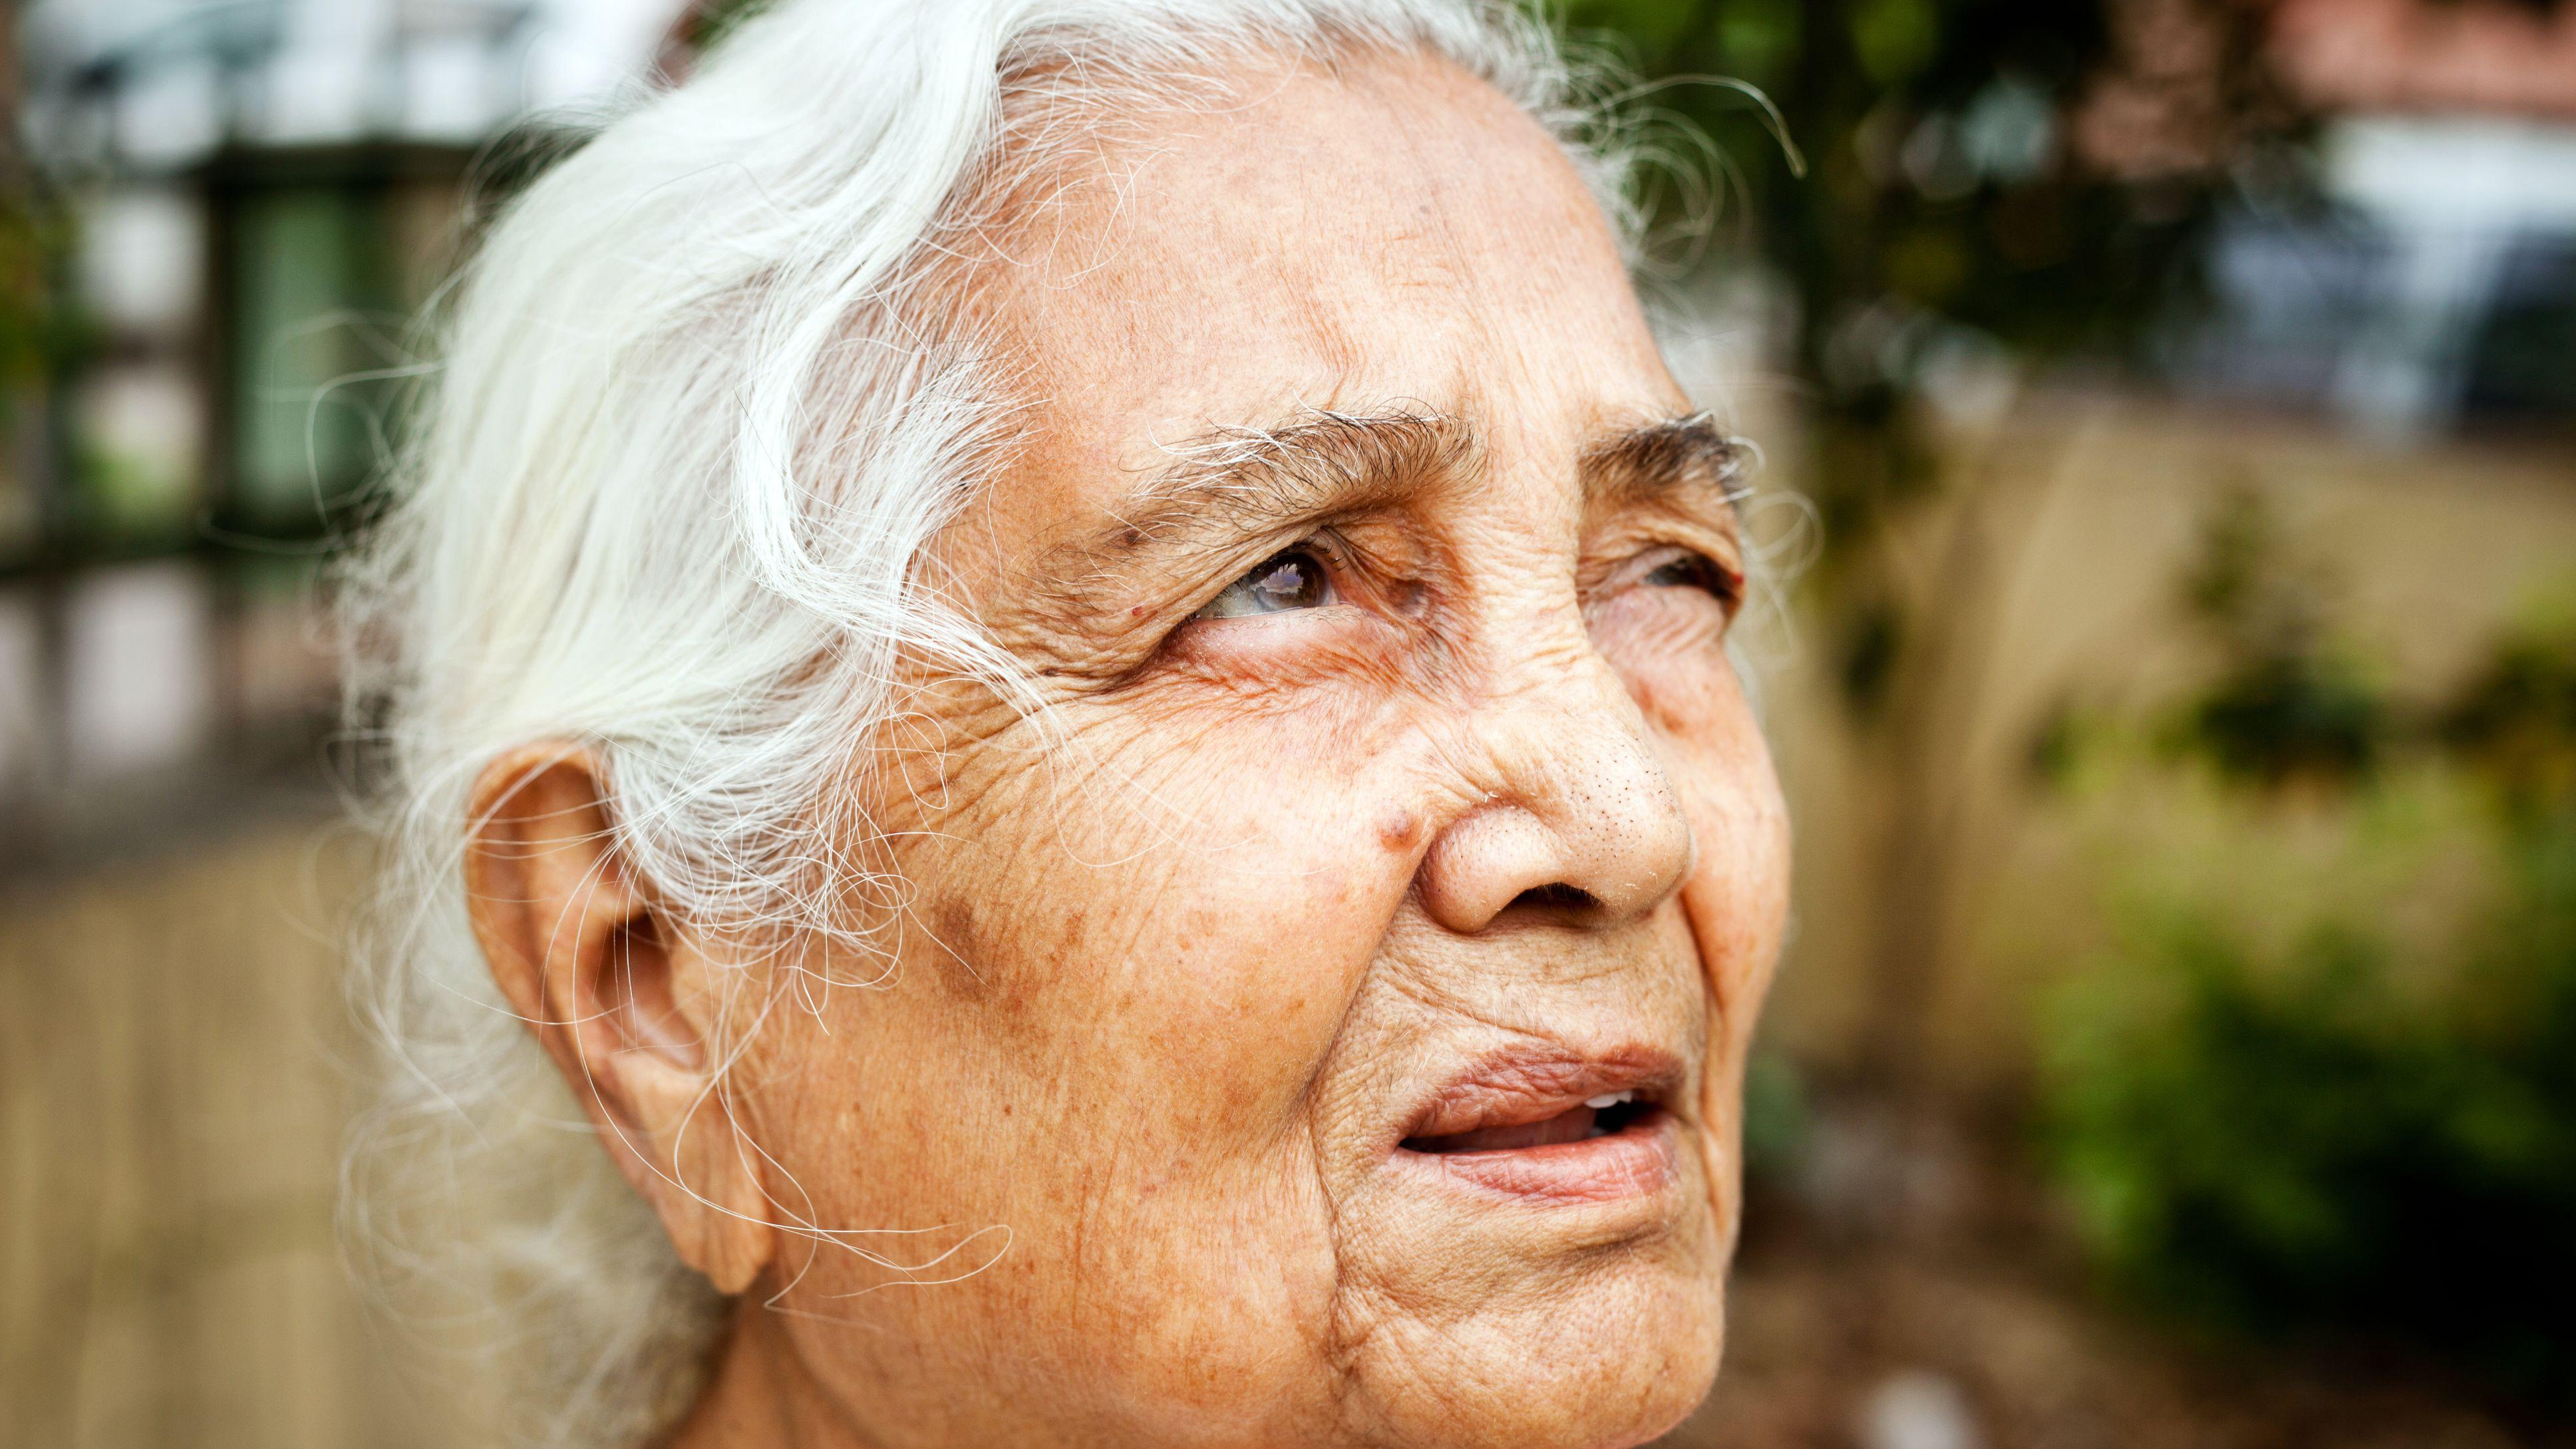 Dementia-Related Cases on a Rise in India: Lancet - Yahoo India News